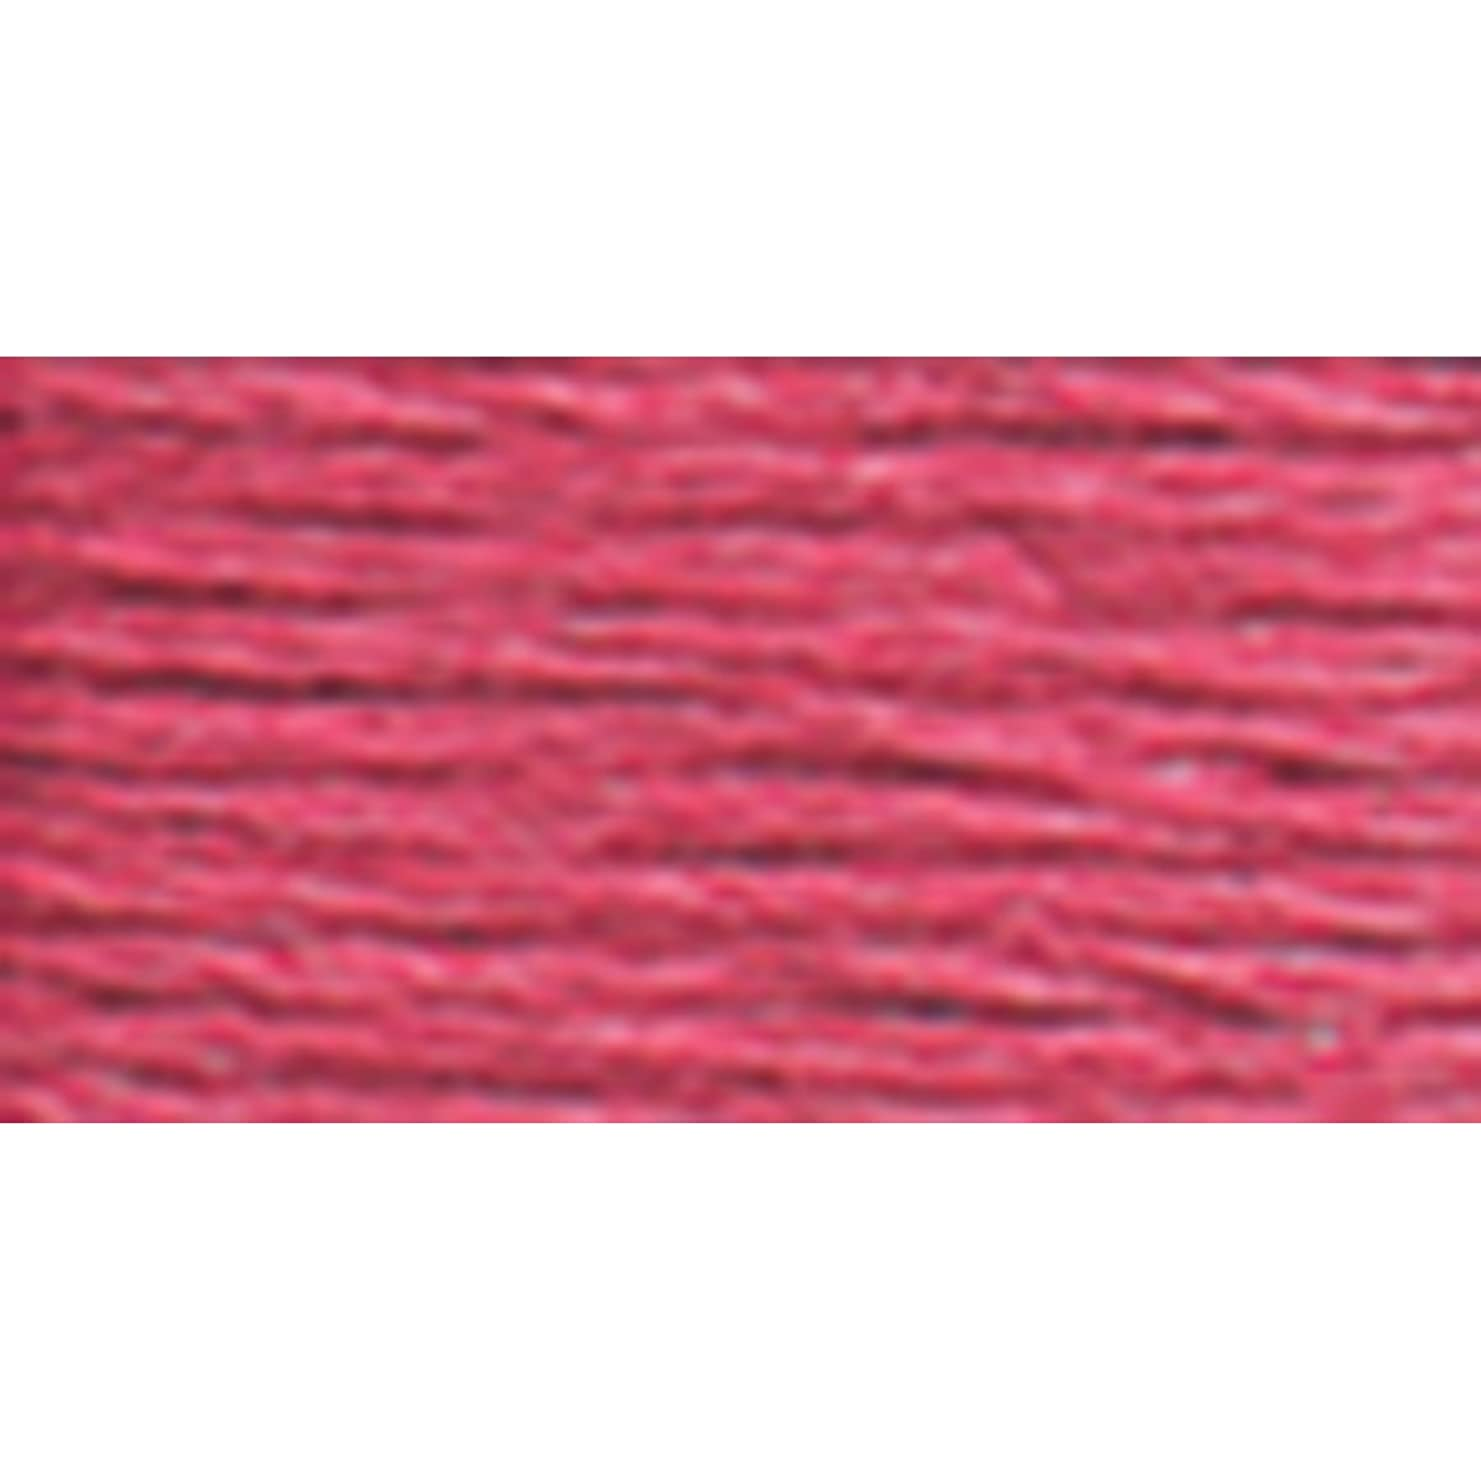 DMC 117-335 Mouline Stranded Cotton Six Strand Embroidery Floss Thread, Rose, 8.7-Yard